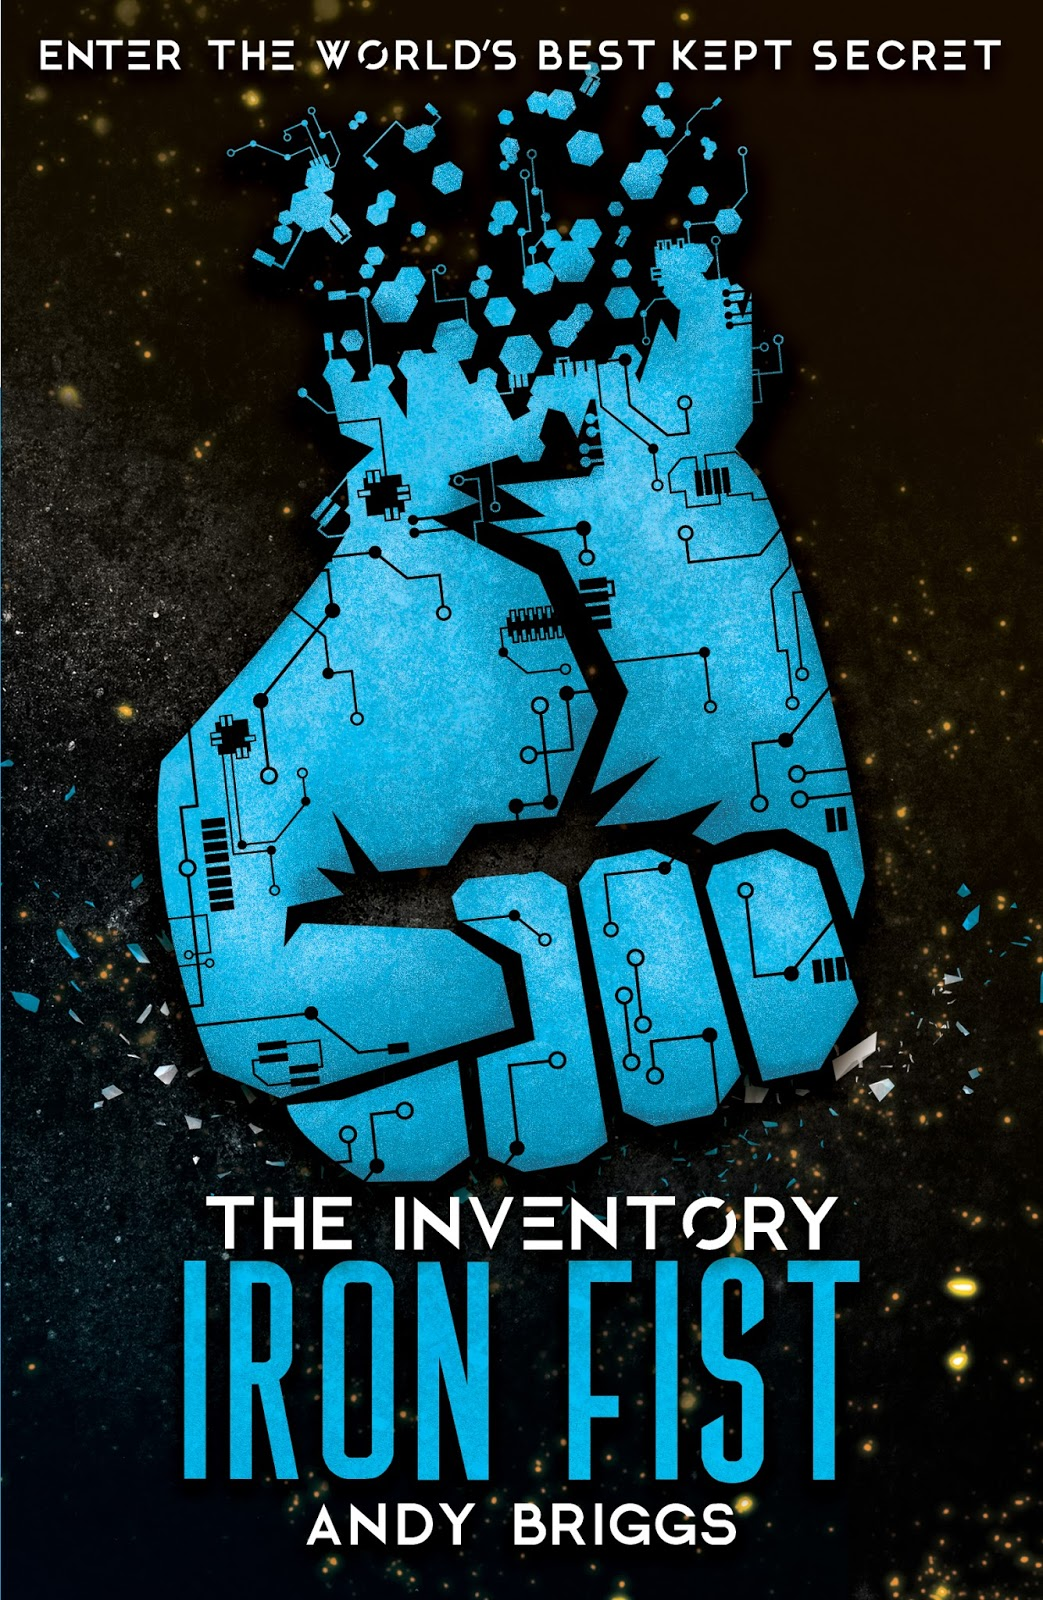 THE INVENTORY - Iron Fist